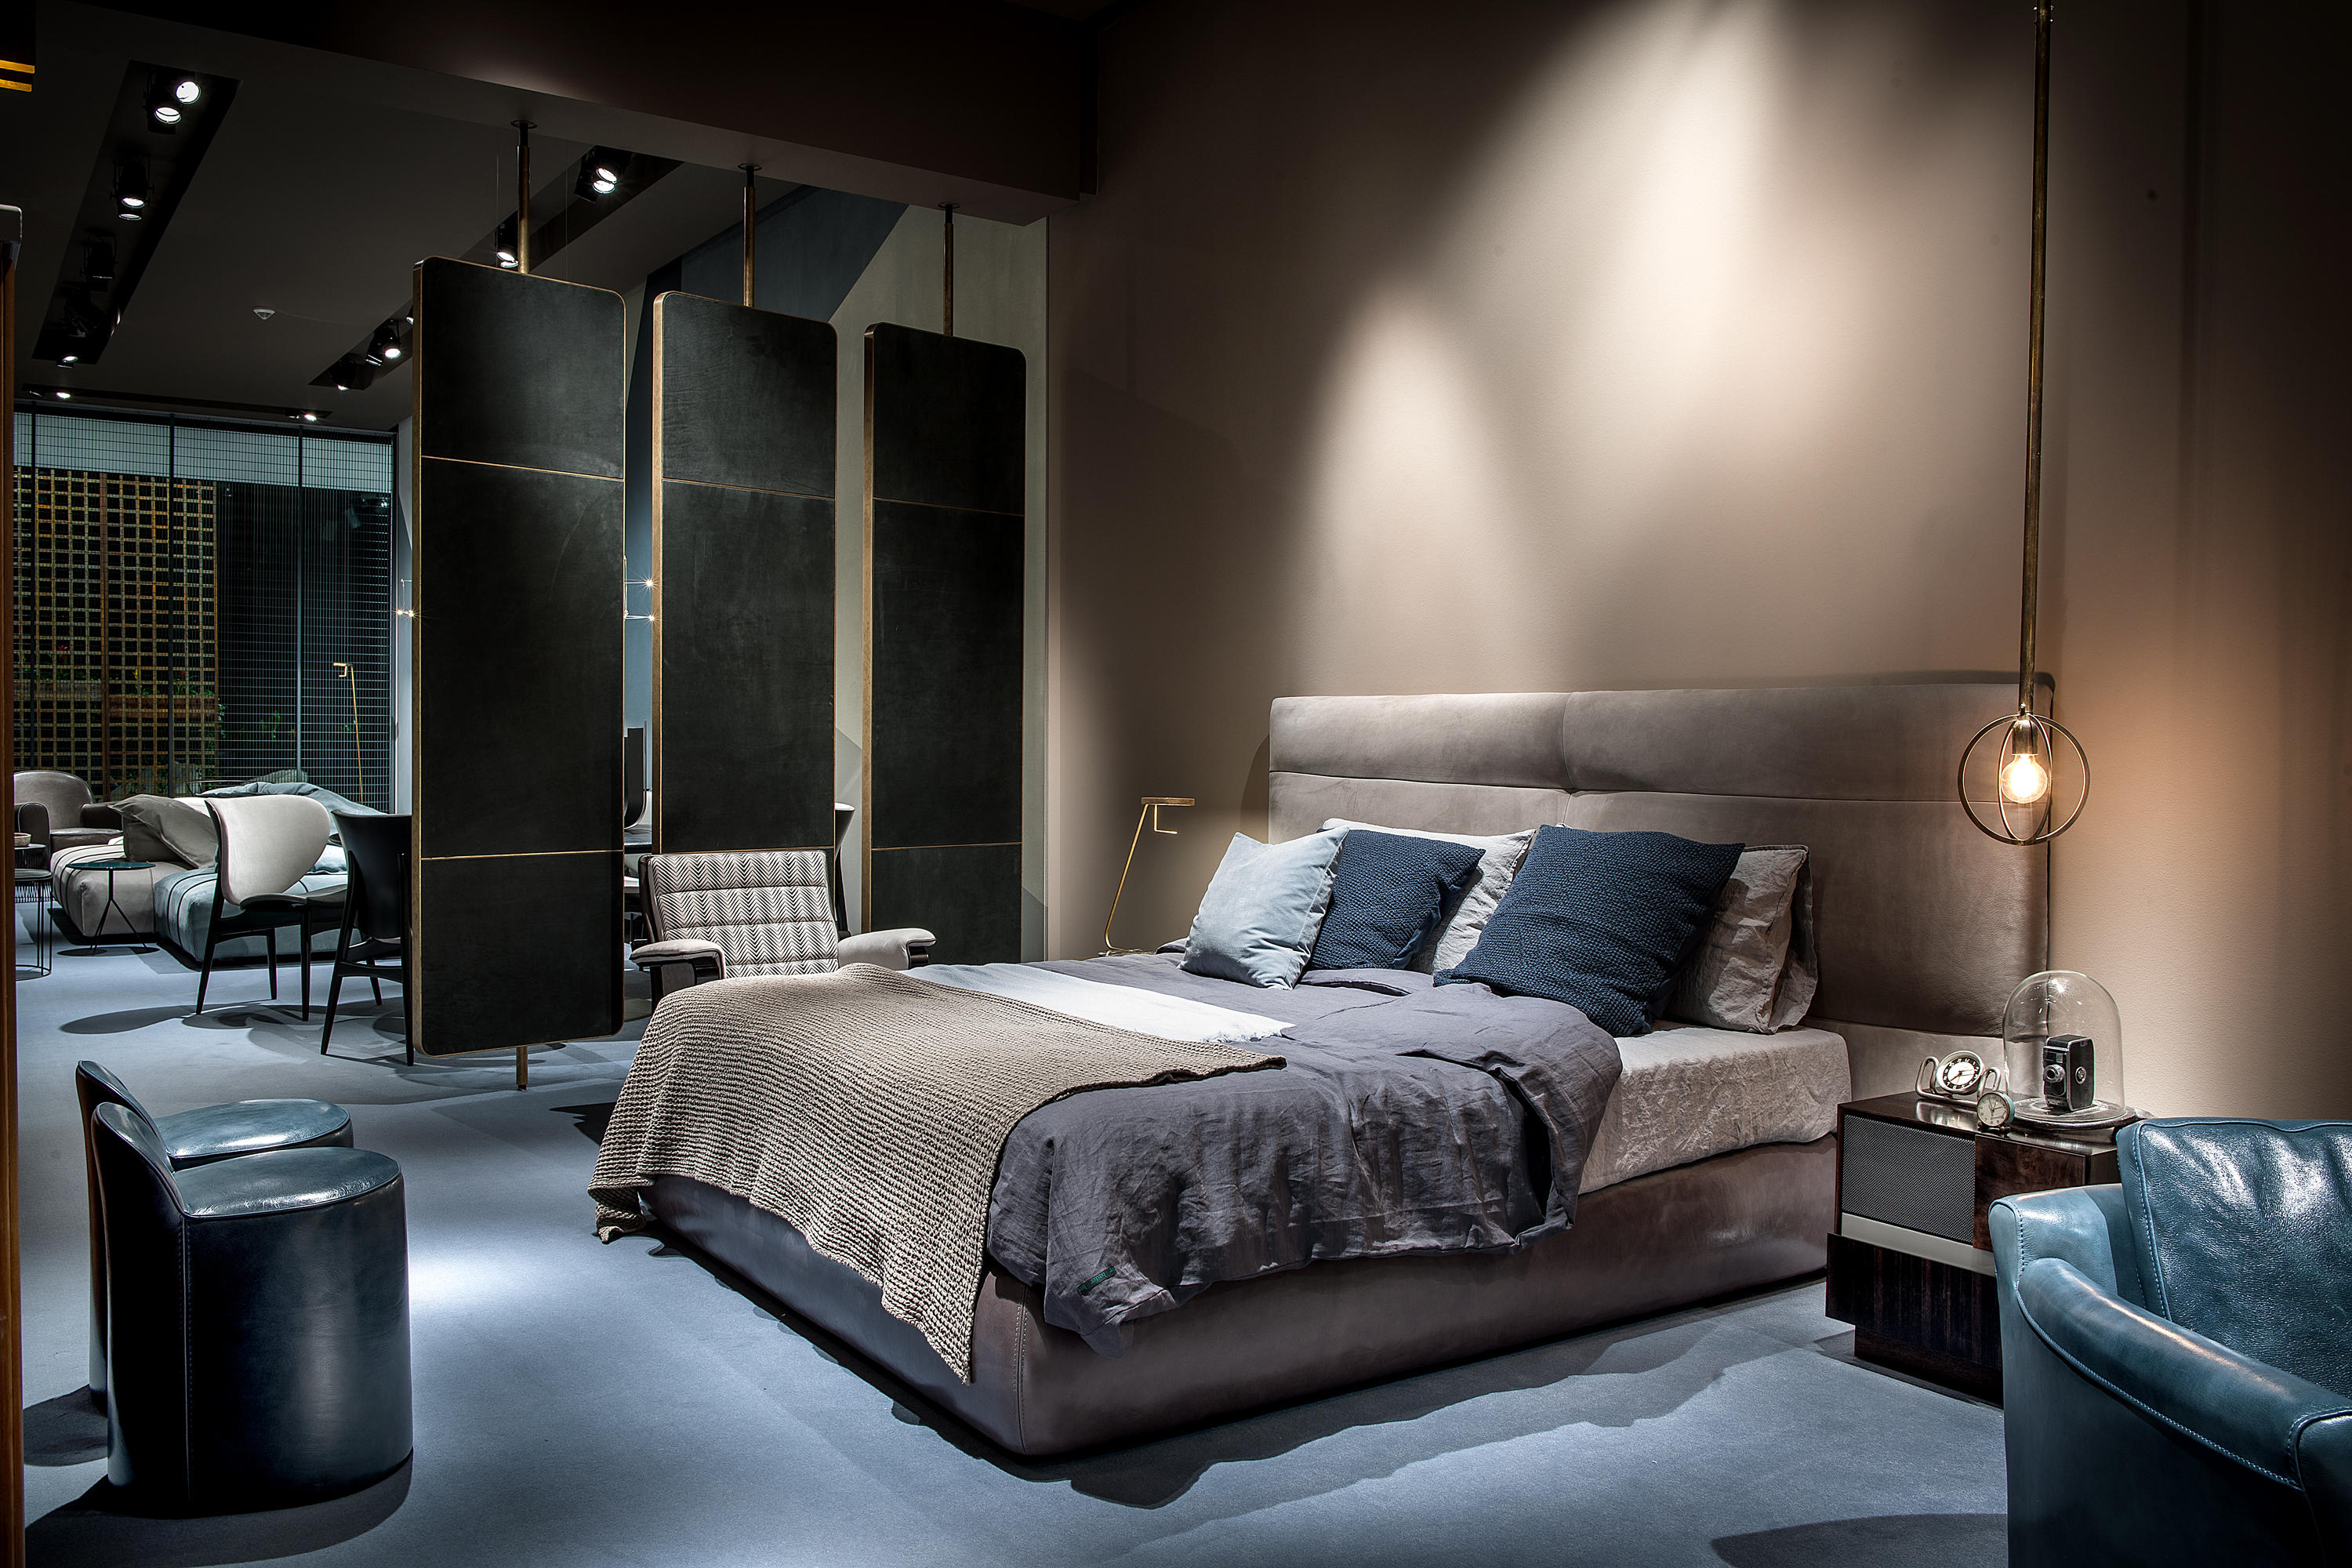 Couche Bed Beds From Baxter Architonic